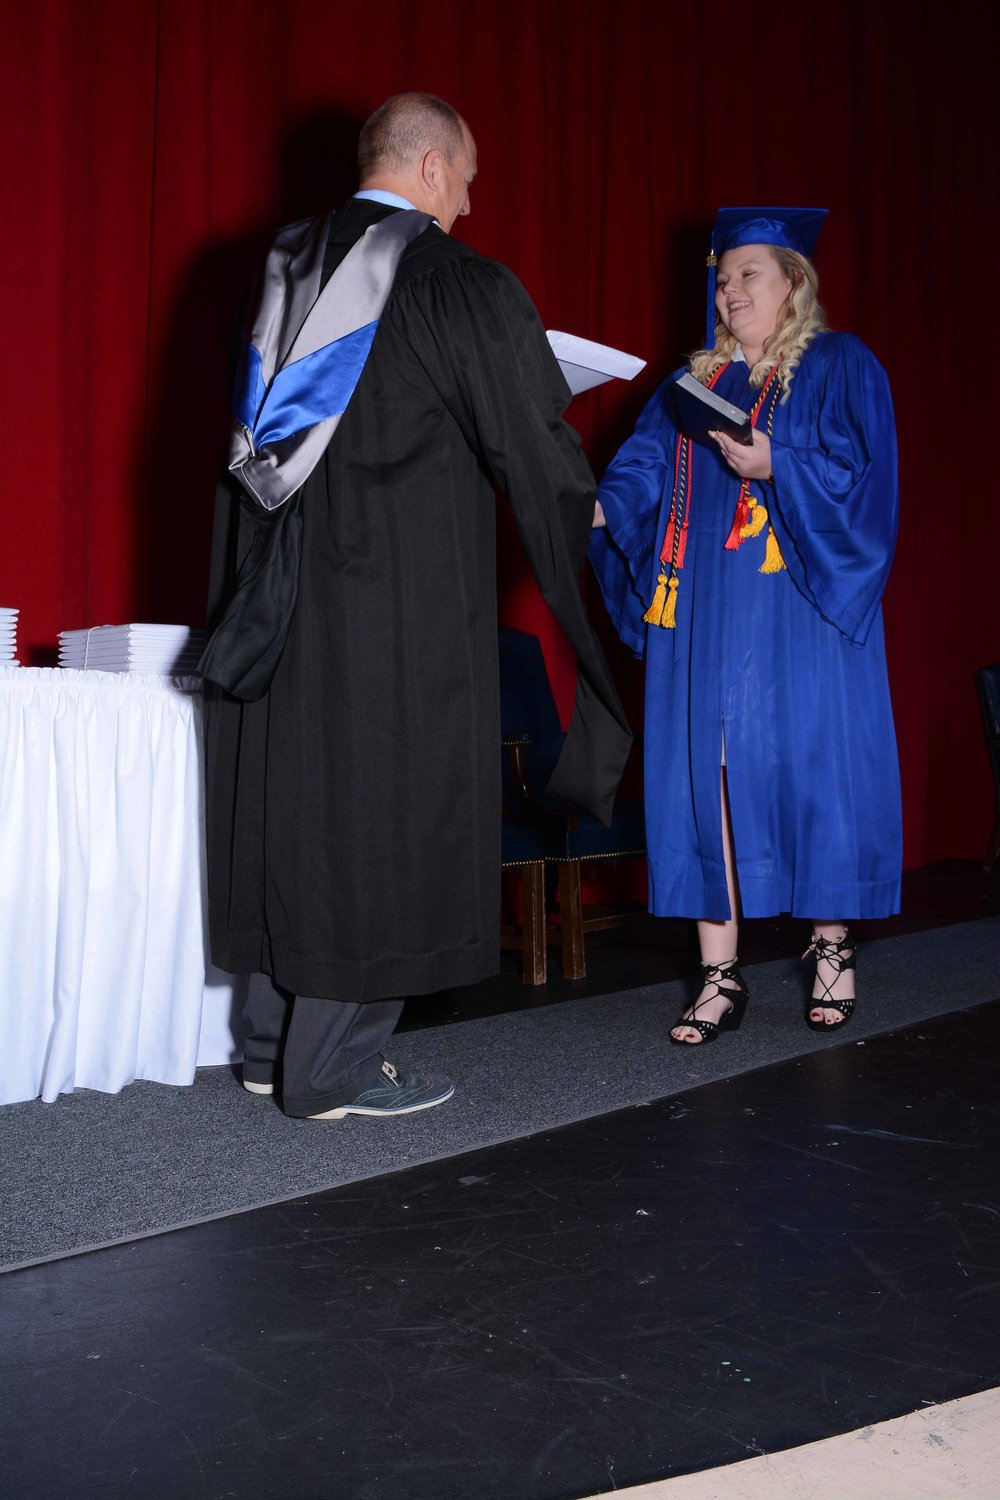 May14 Commencement146.jpg